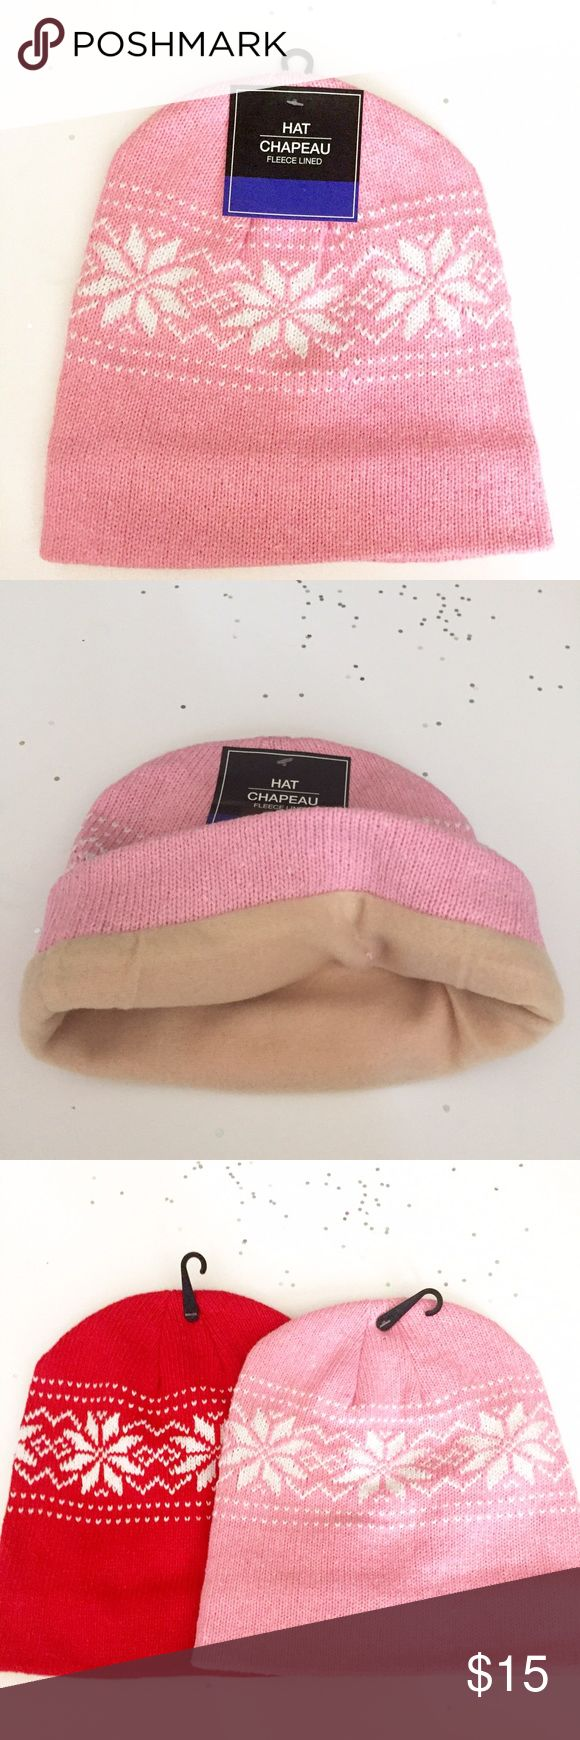 🌸SALE🌸Fleece Lined Snow Hat NWT 63% Polyester/ 33% cotton. Have in pink and red. Accessories Hats